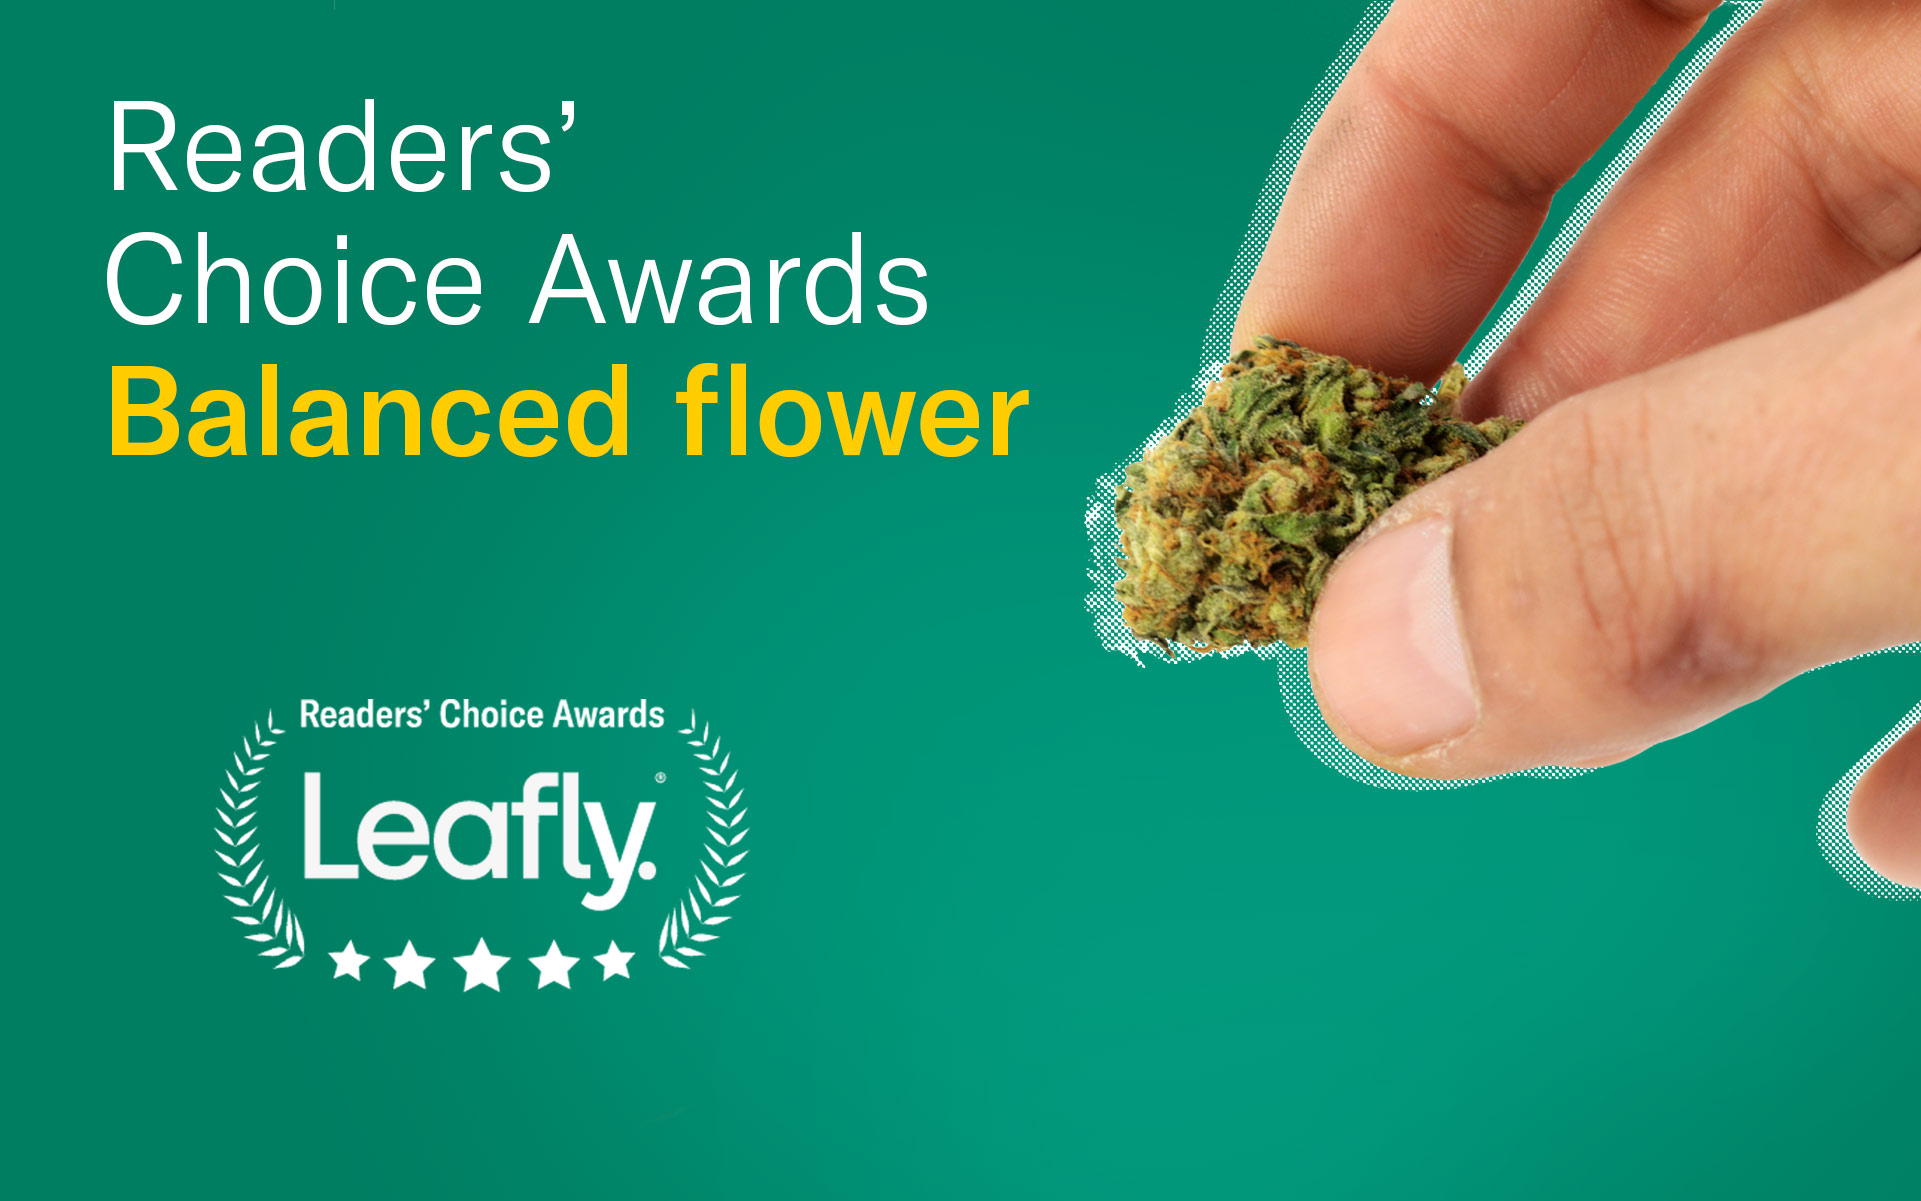 leafly canada readers choice favourite balanced flower